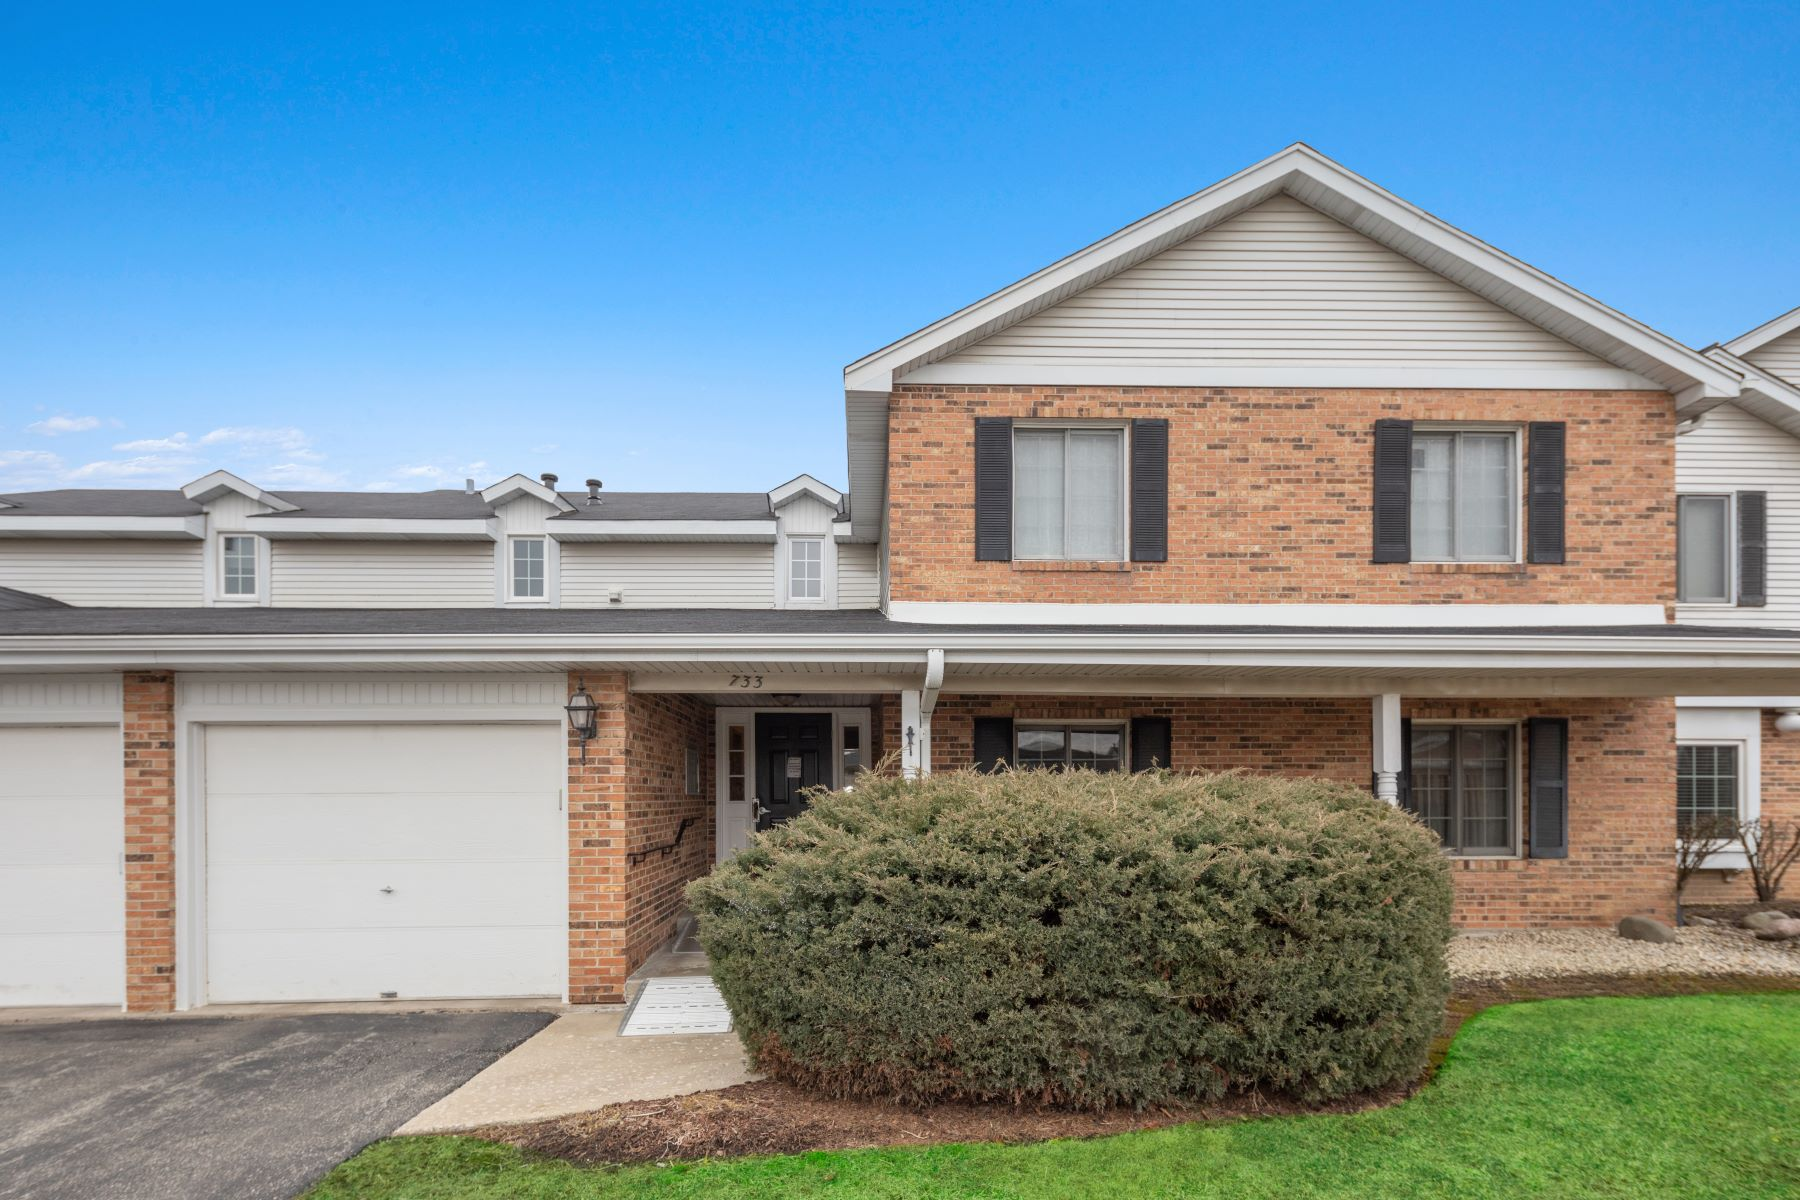 Single Family Homes for Active at Immaculate Townhome 733 Cottonwood Court Unit B Willowbrook, Illinois 60527 United States